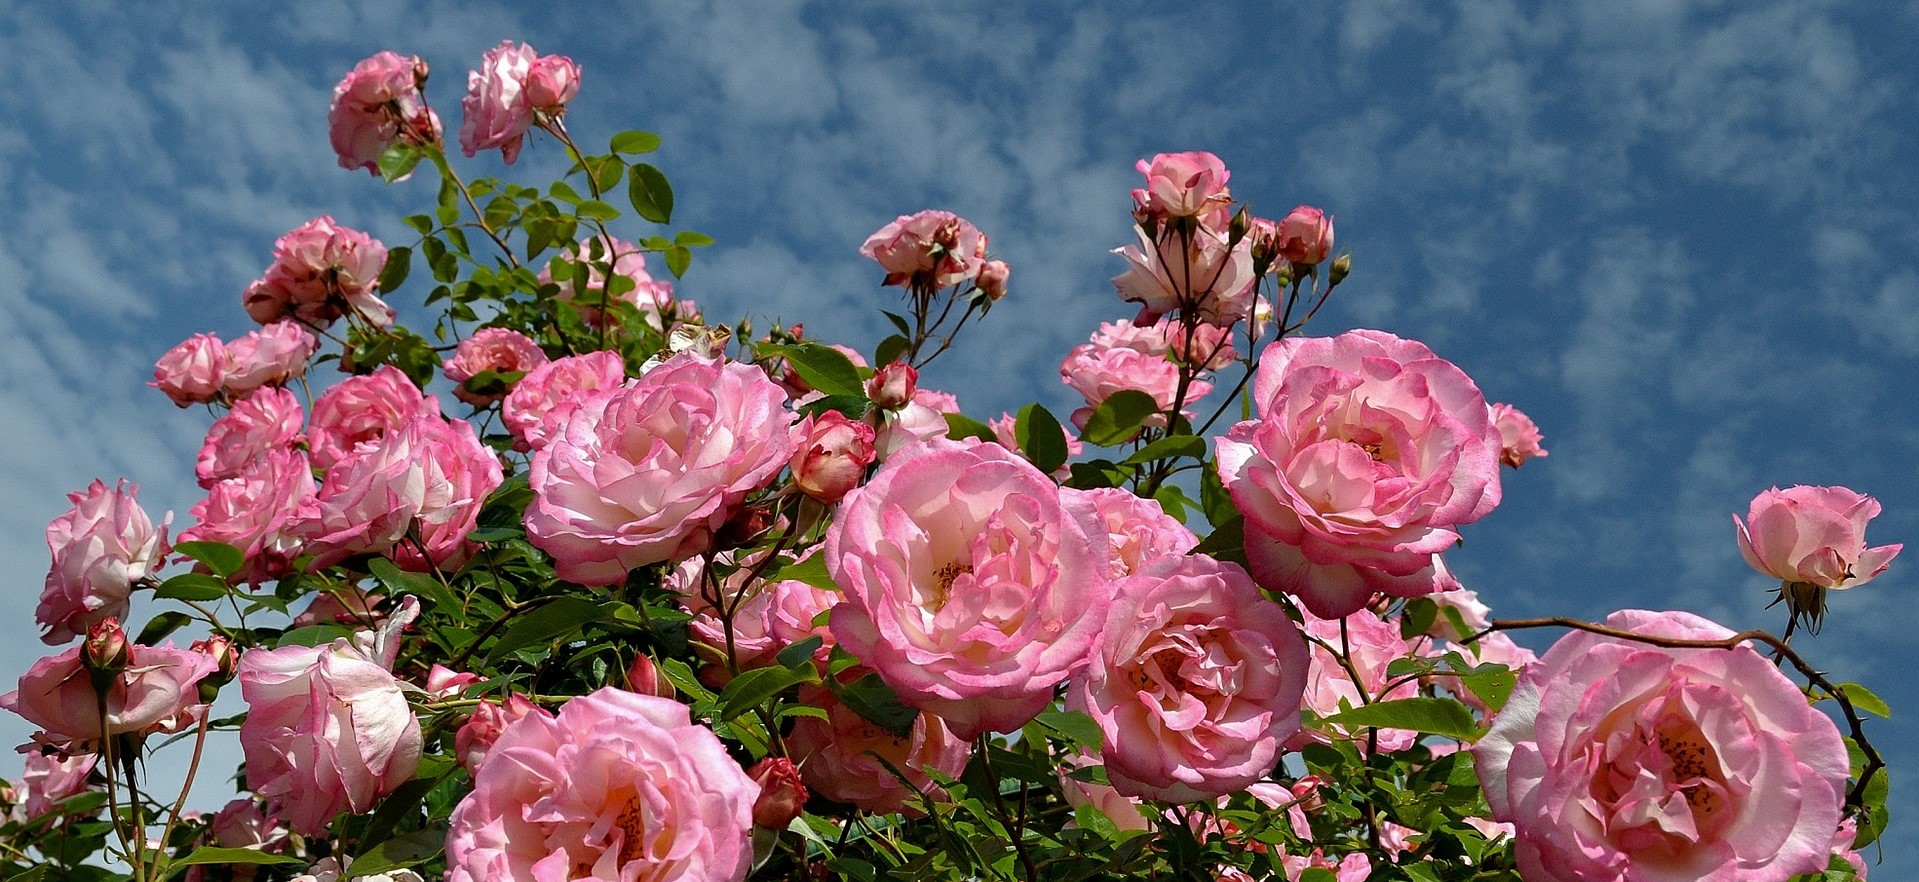 Portland Oregon is the home of Rose Festival | Breast Cancer Car Donations